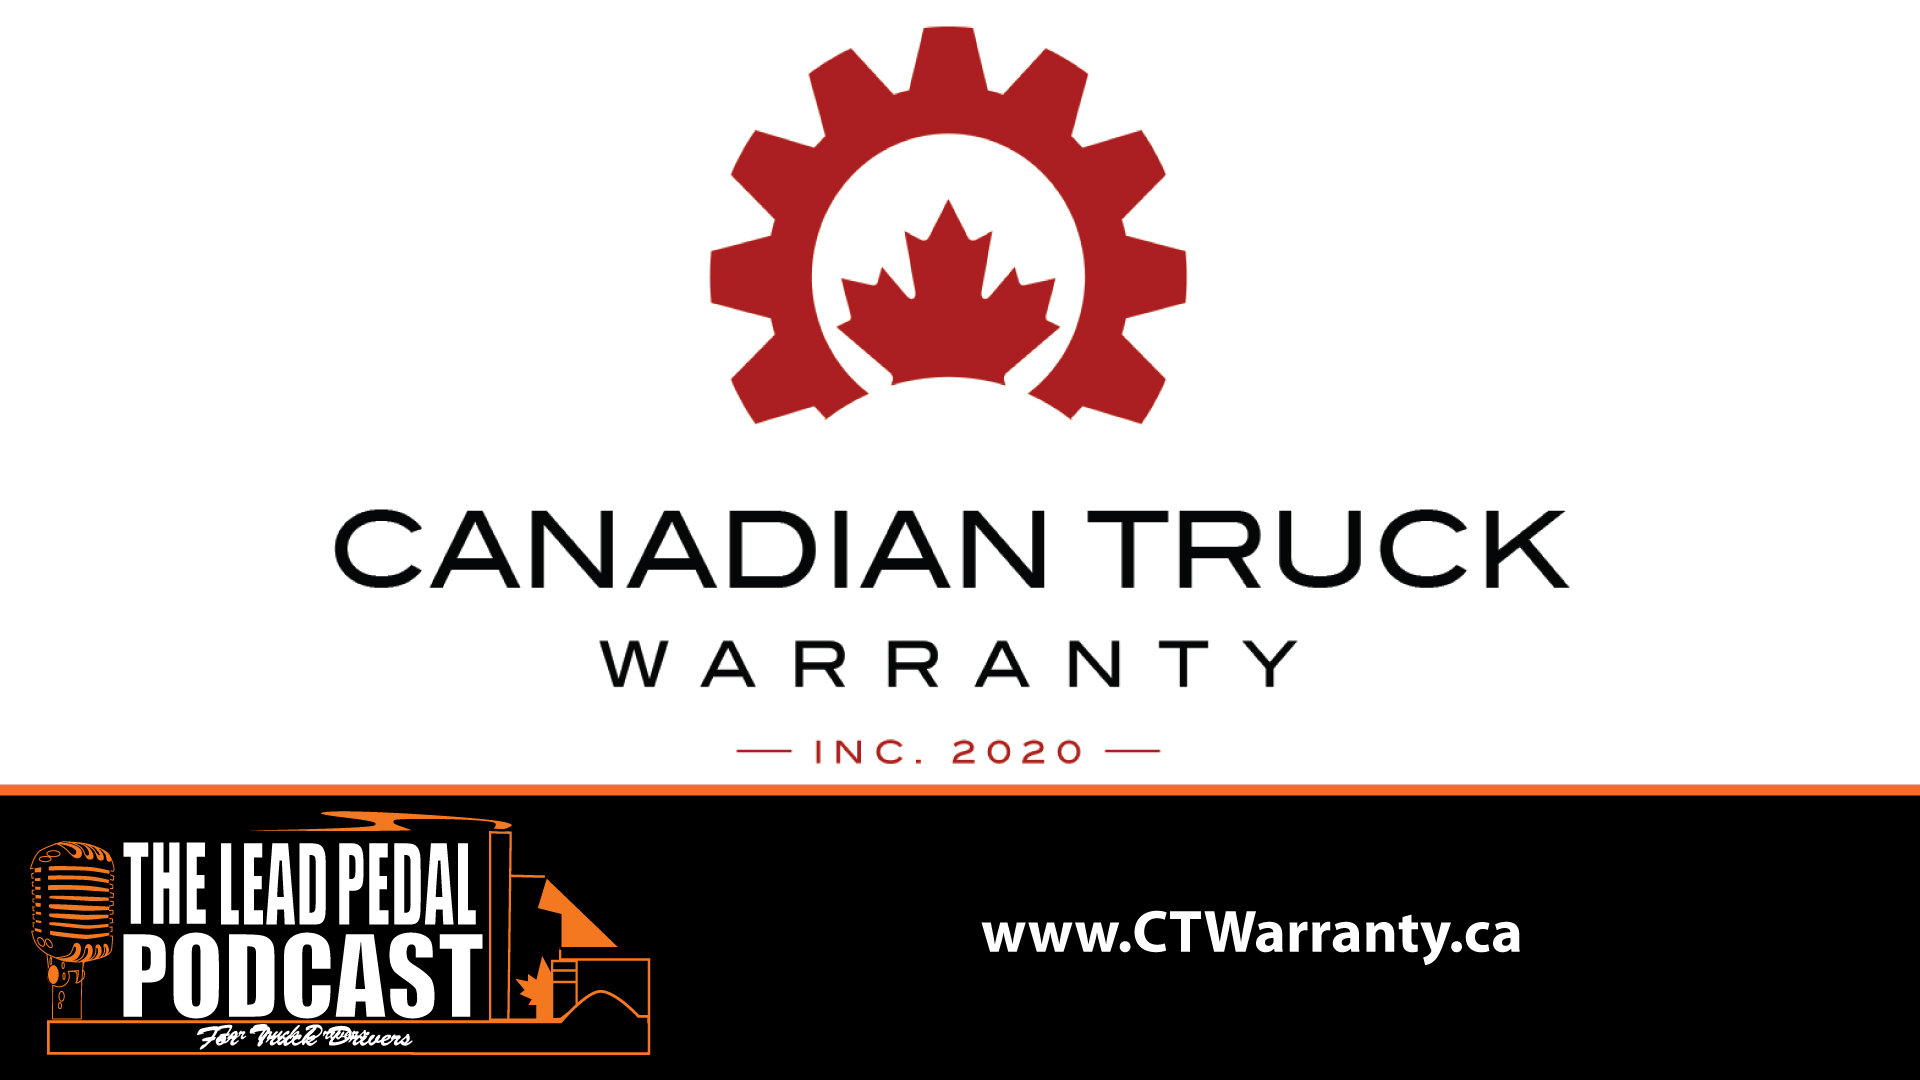 LPCanadian-Truck-Warranty-Podcast-Video-Cover-Image